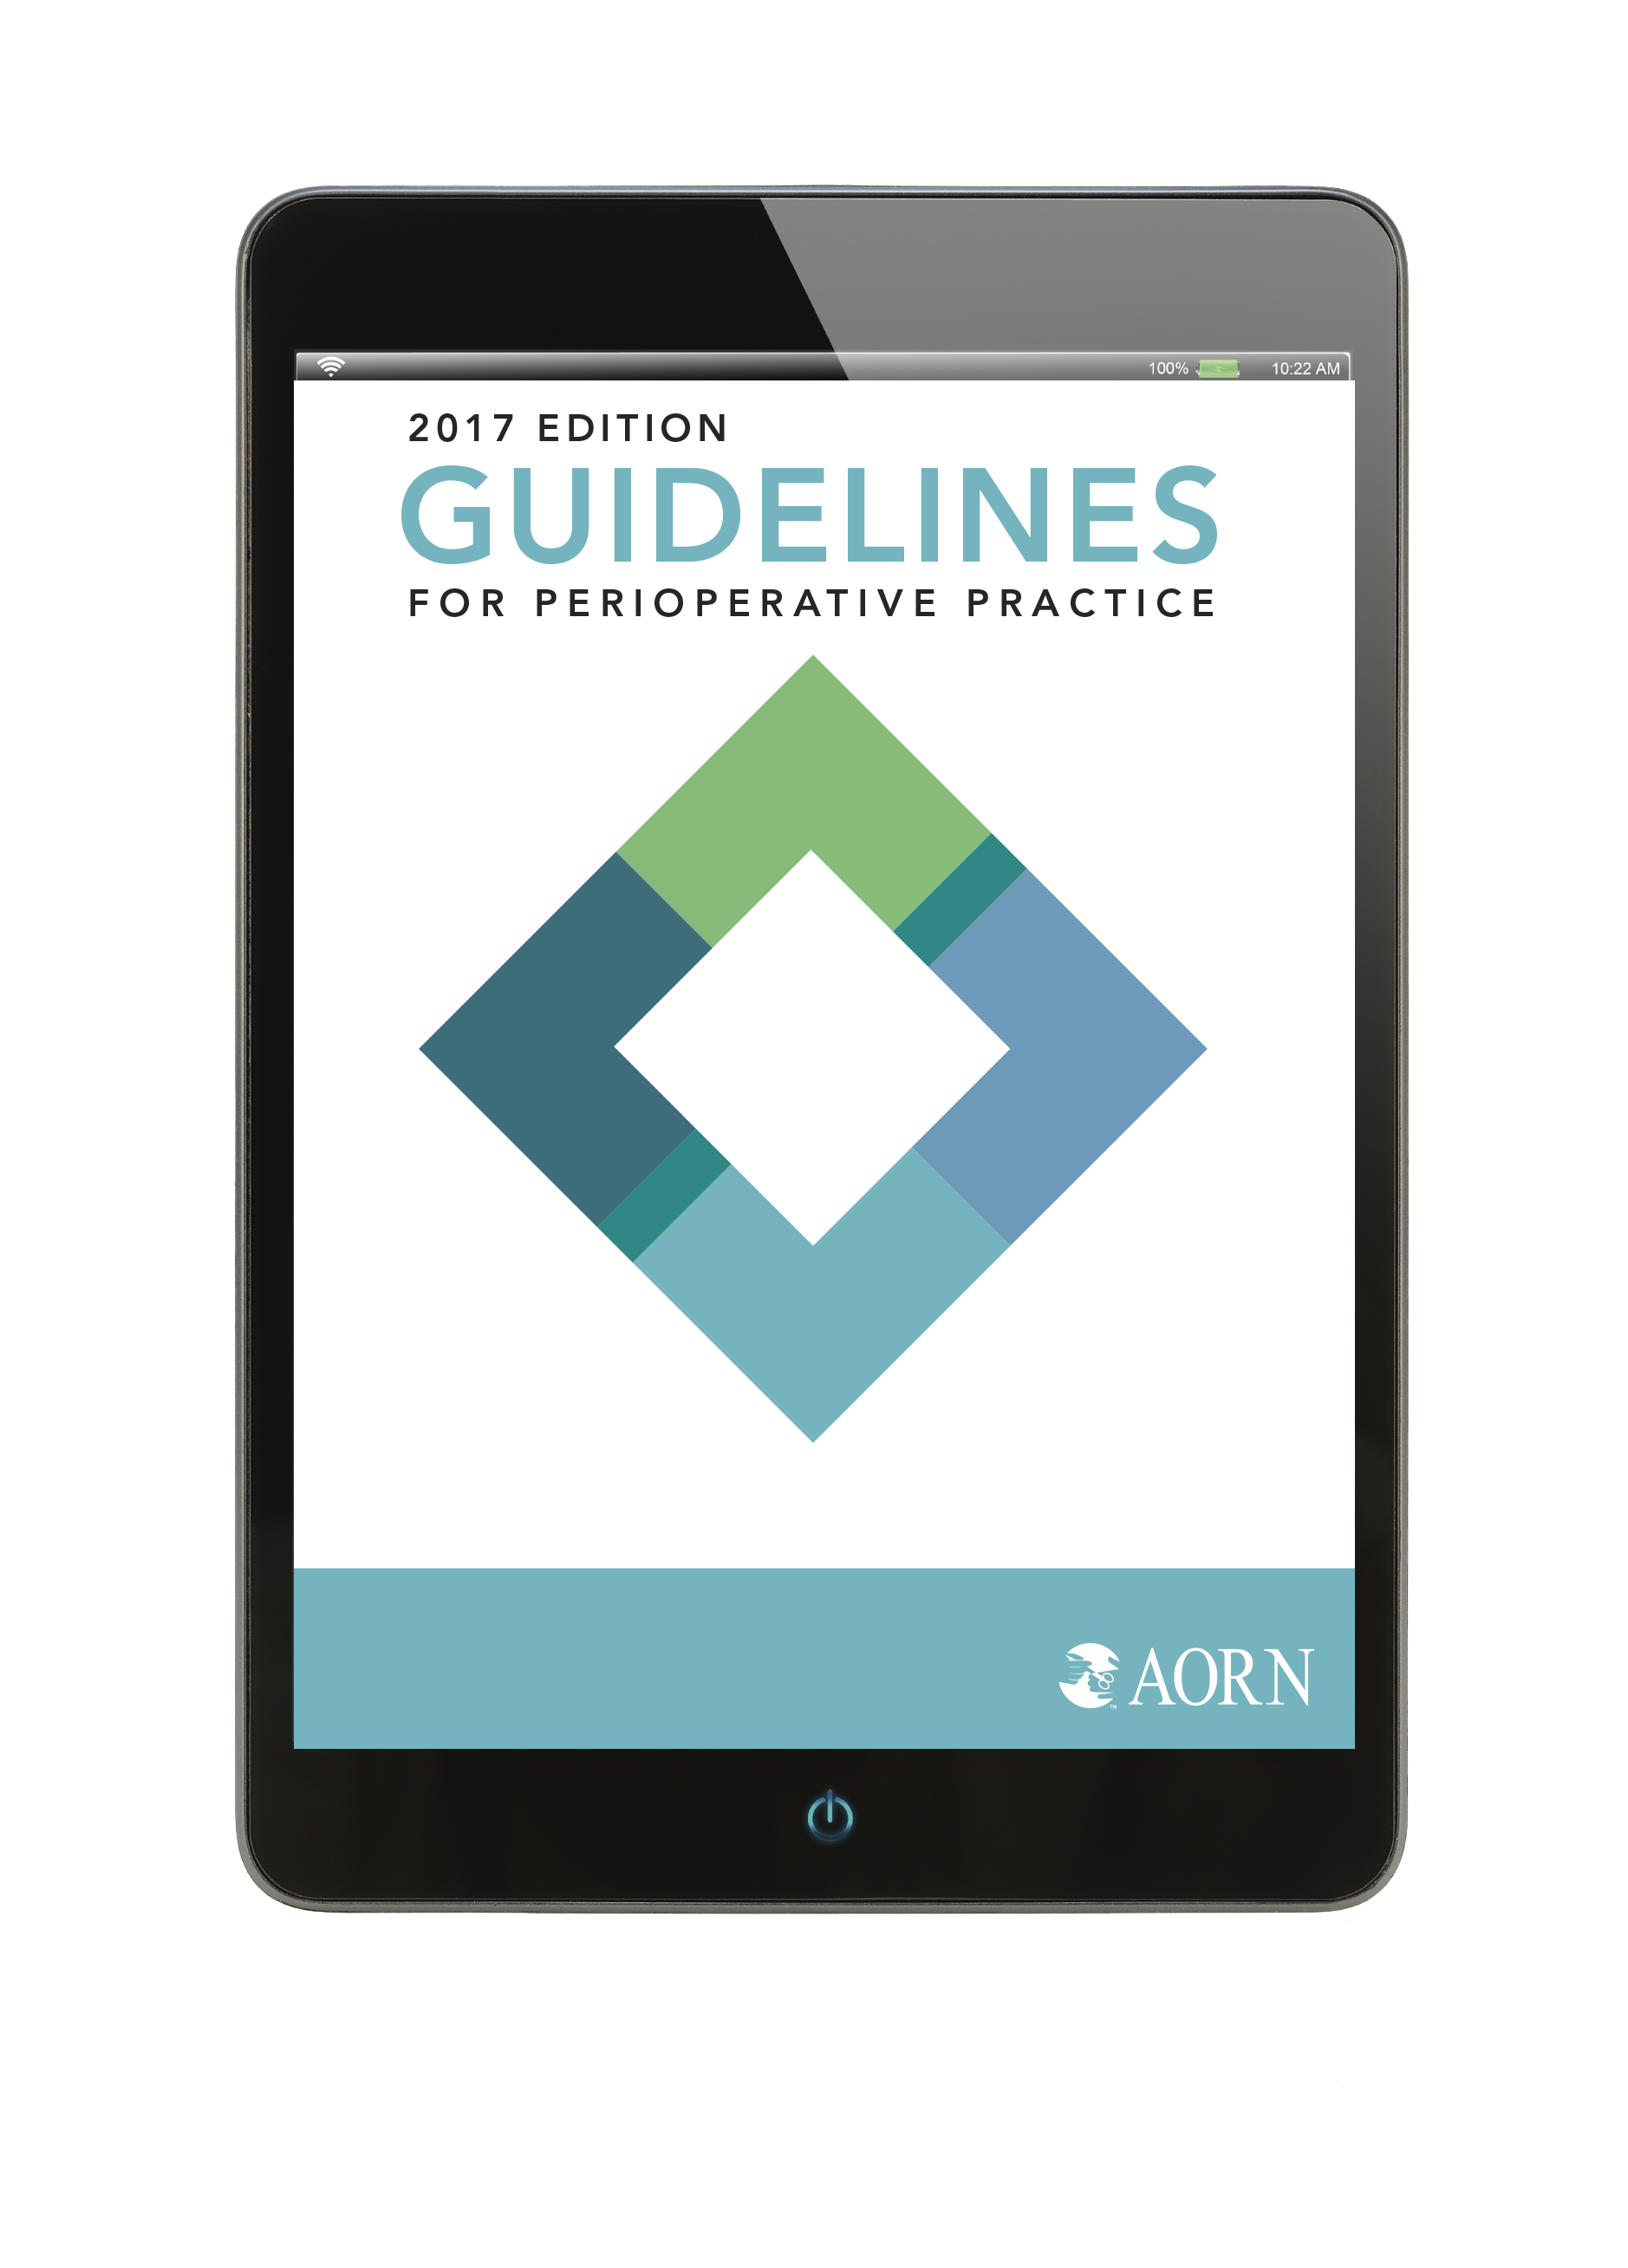 2017 Guidelines eBook Mobile App